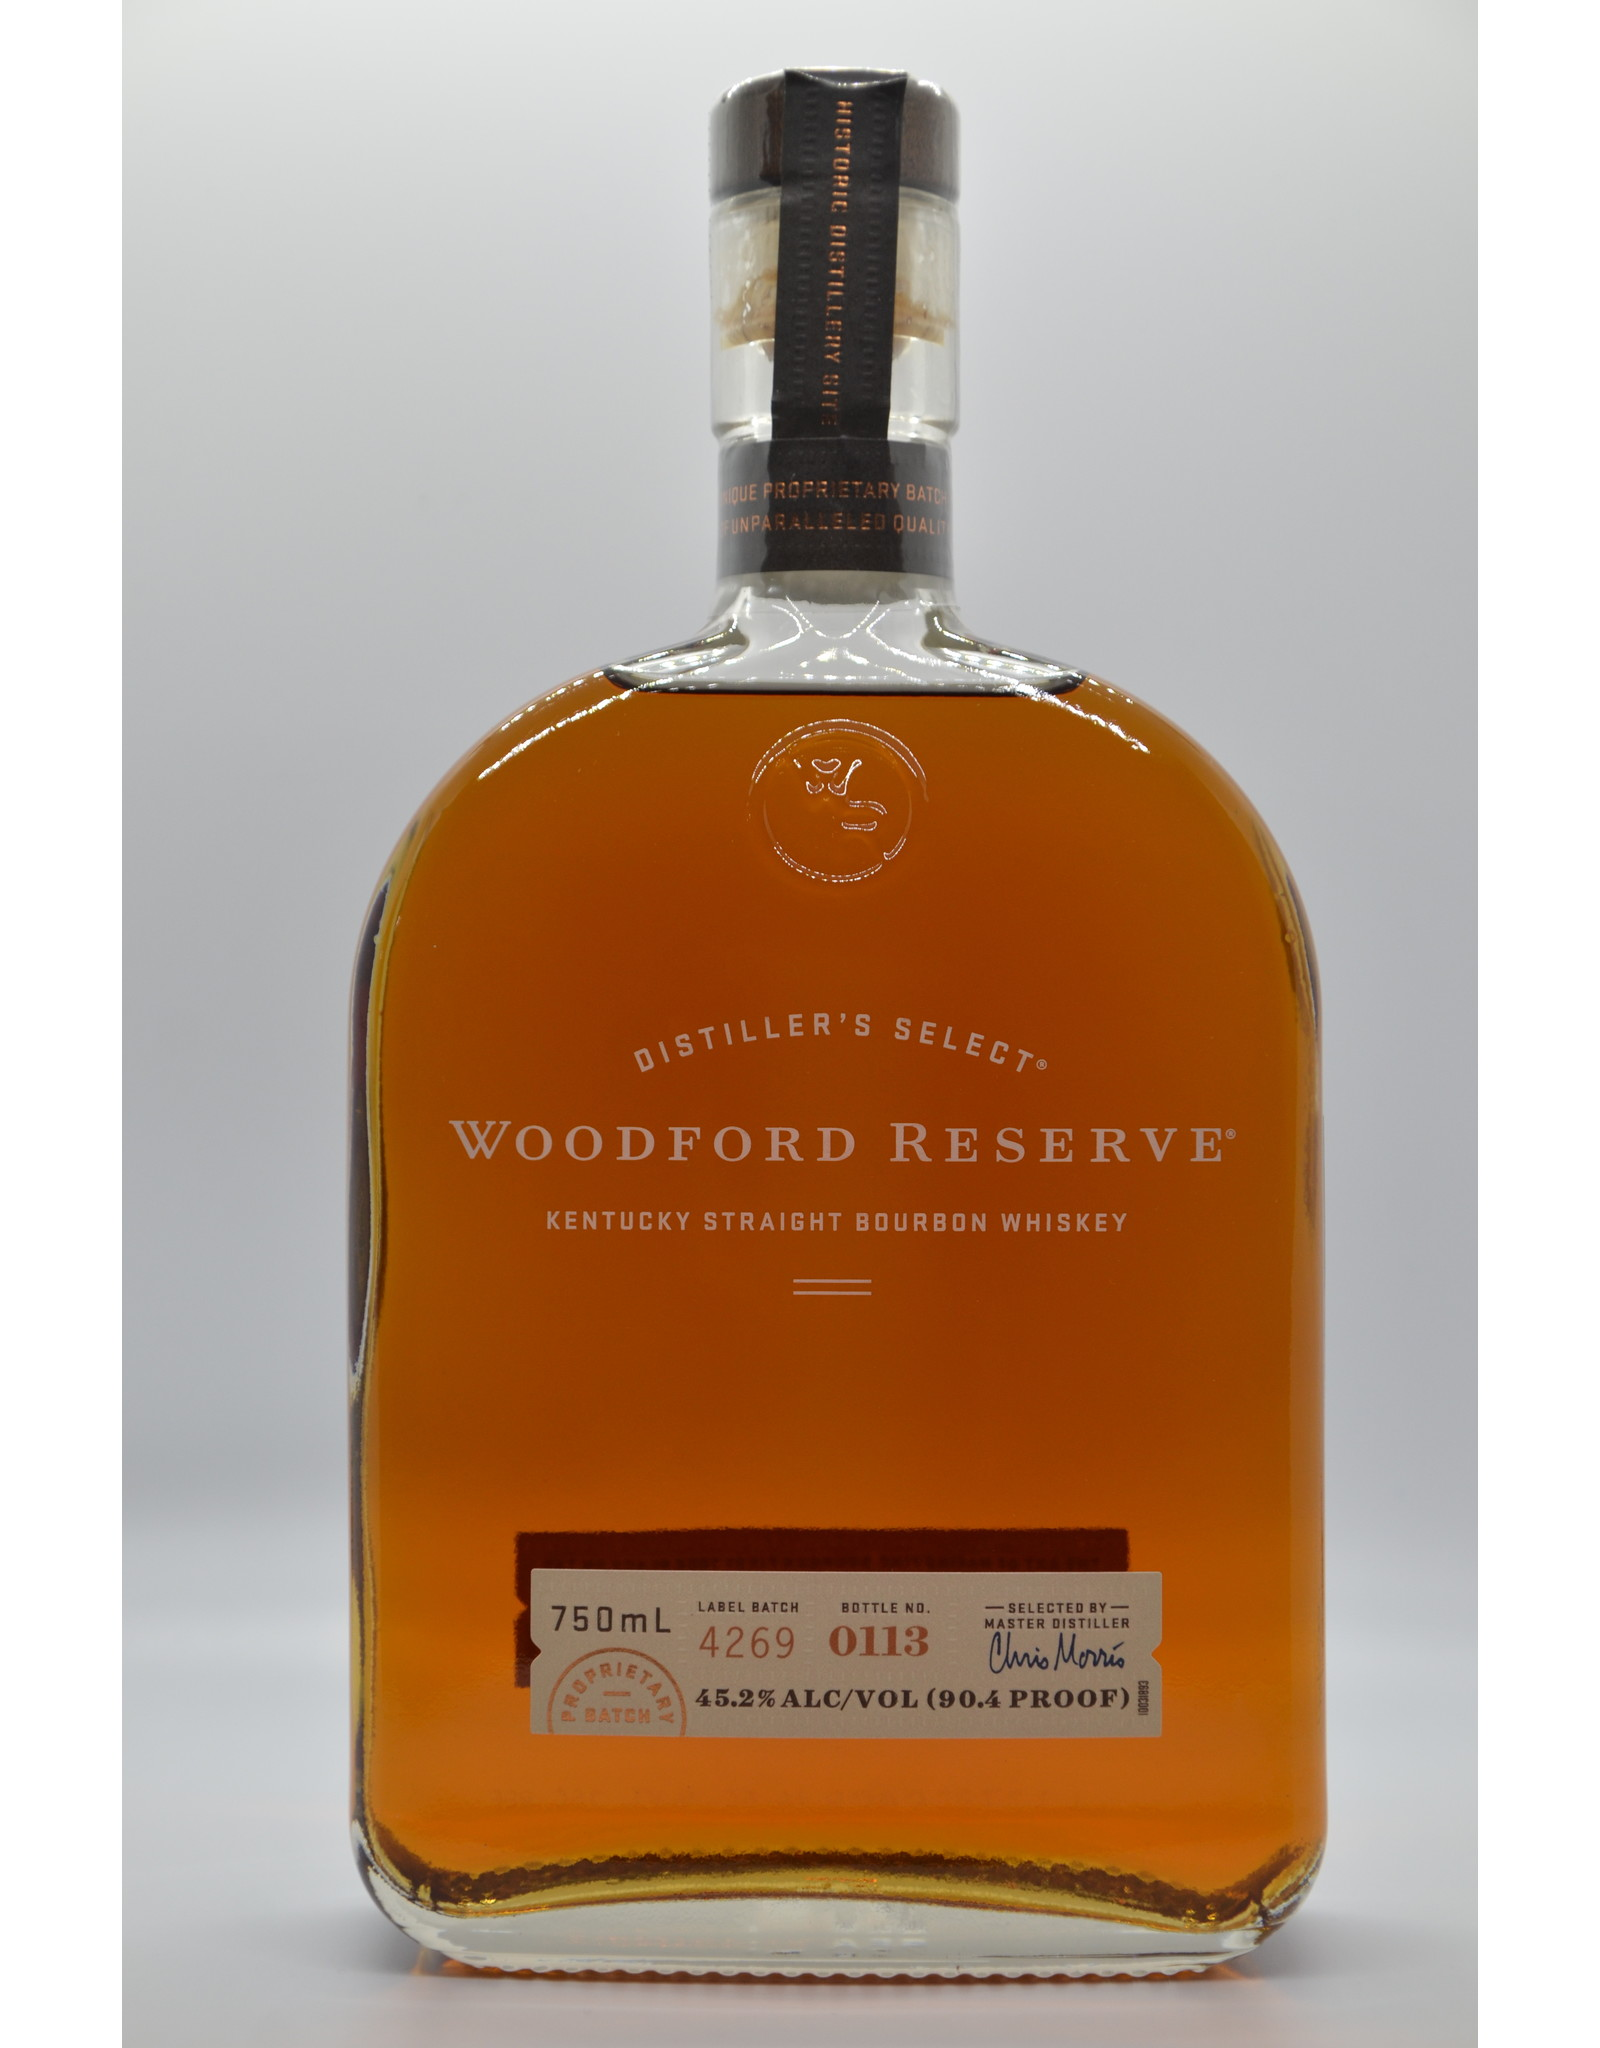 USA Woodford Reserve 750ml